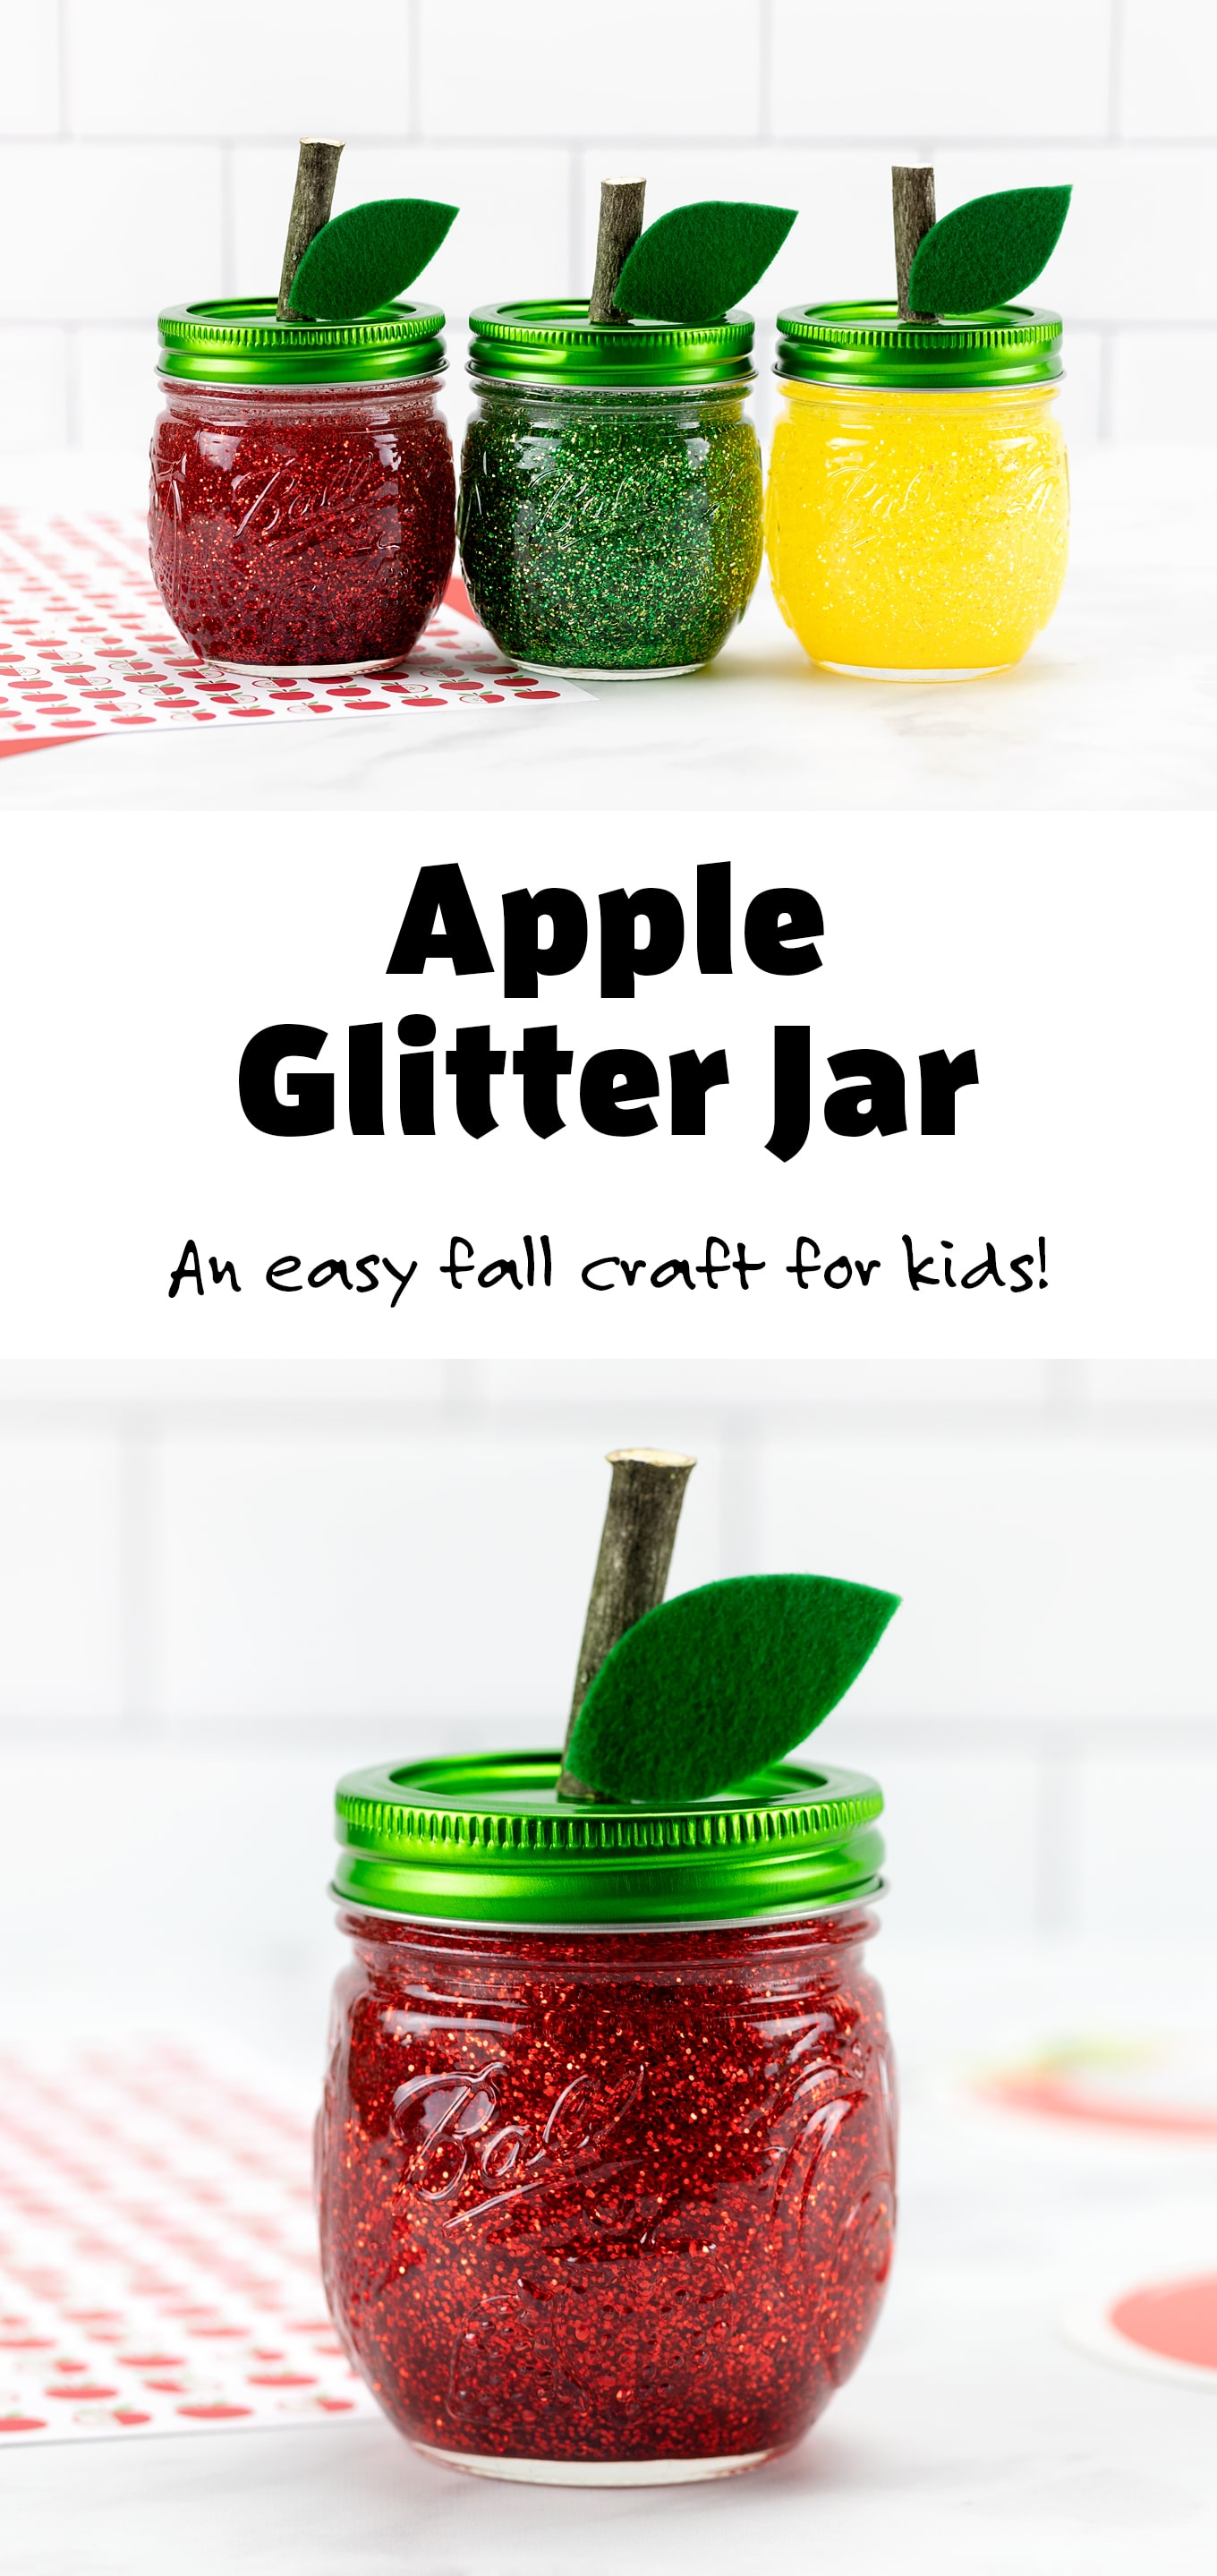 Making apple glitter jarsto welcome September is an easy and fun mason jar project for kids! In this post, learn how to make red, yellow, and green apple-shapedglitter jars that are perfect for calming back-to-school jitters. #glitterjars #appleglitterjars #fallcrafts via @firefliesandmudpies